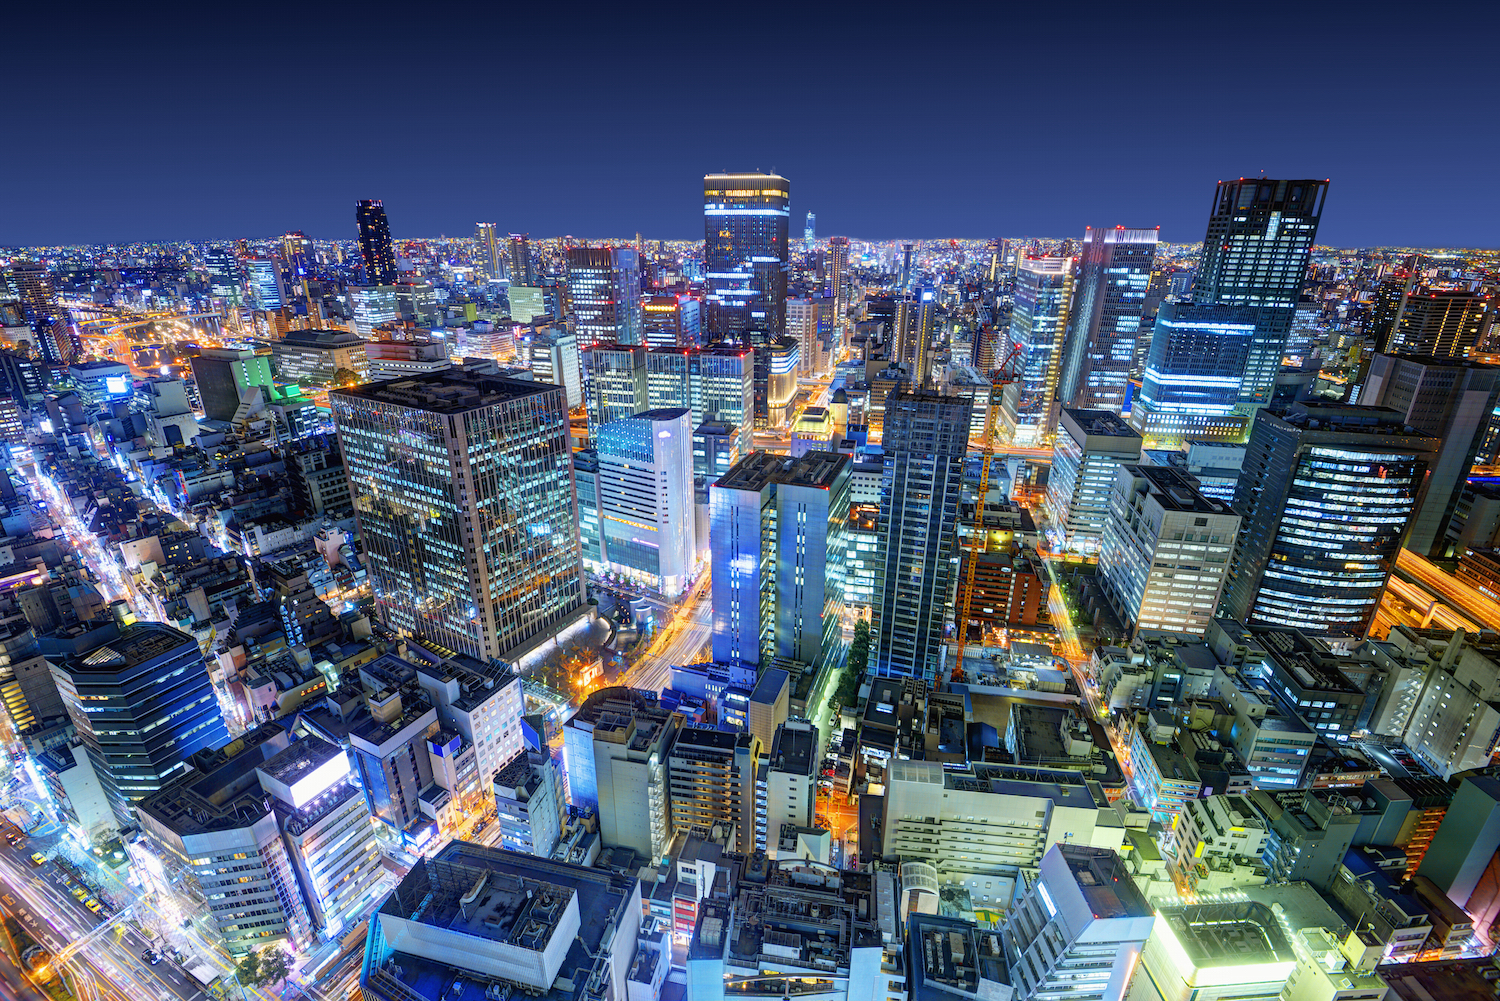 Japanese city at night